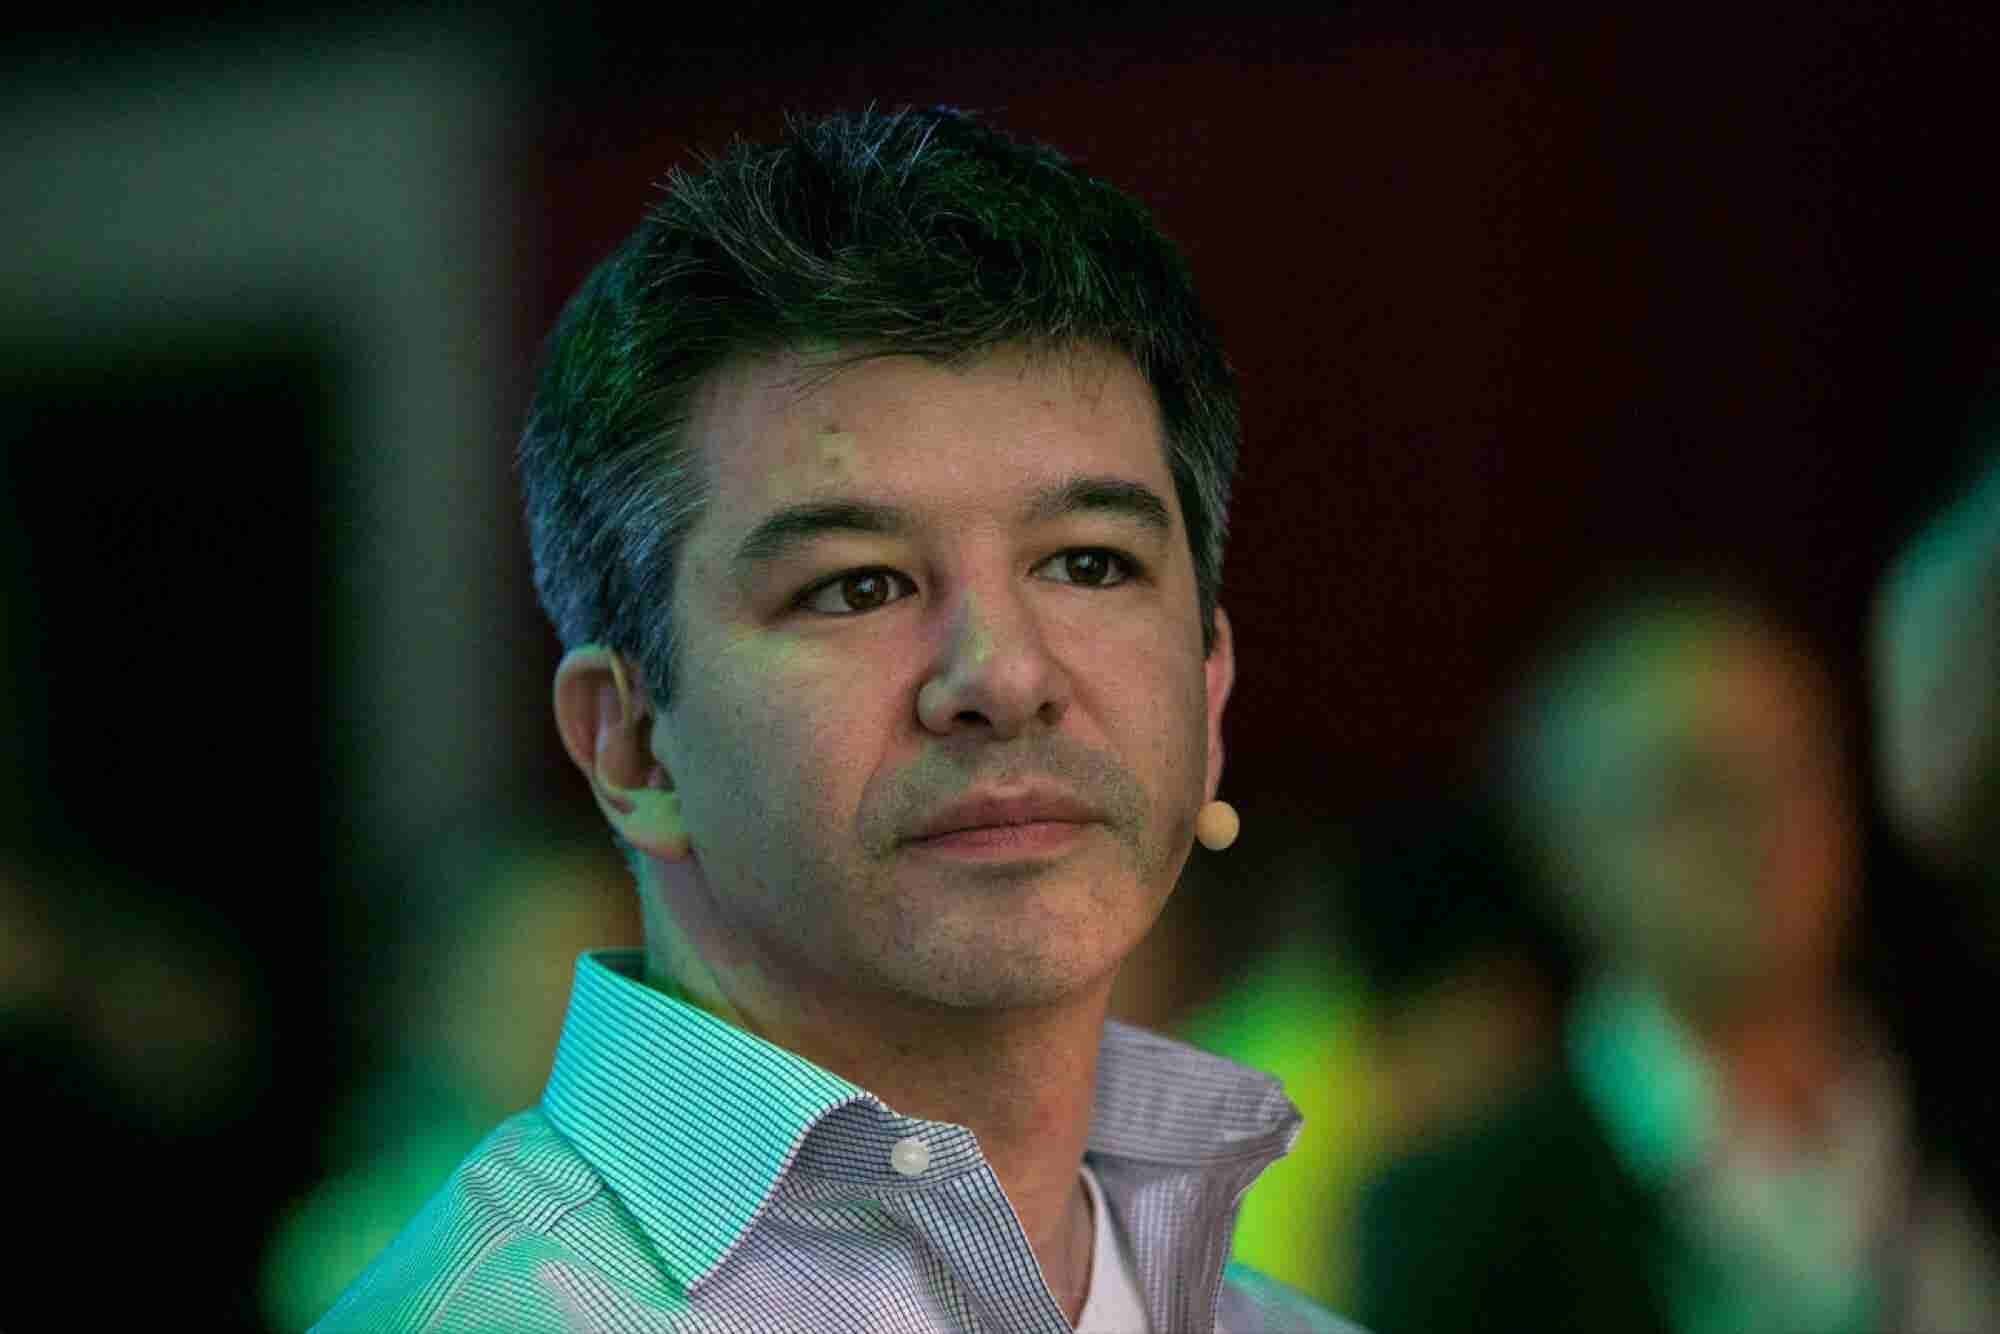 Uber CEO Travis Kalanick Launches Investigation Into Sexual Harassment Claims